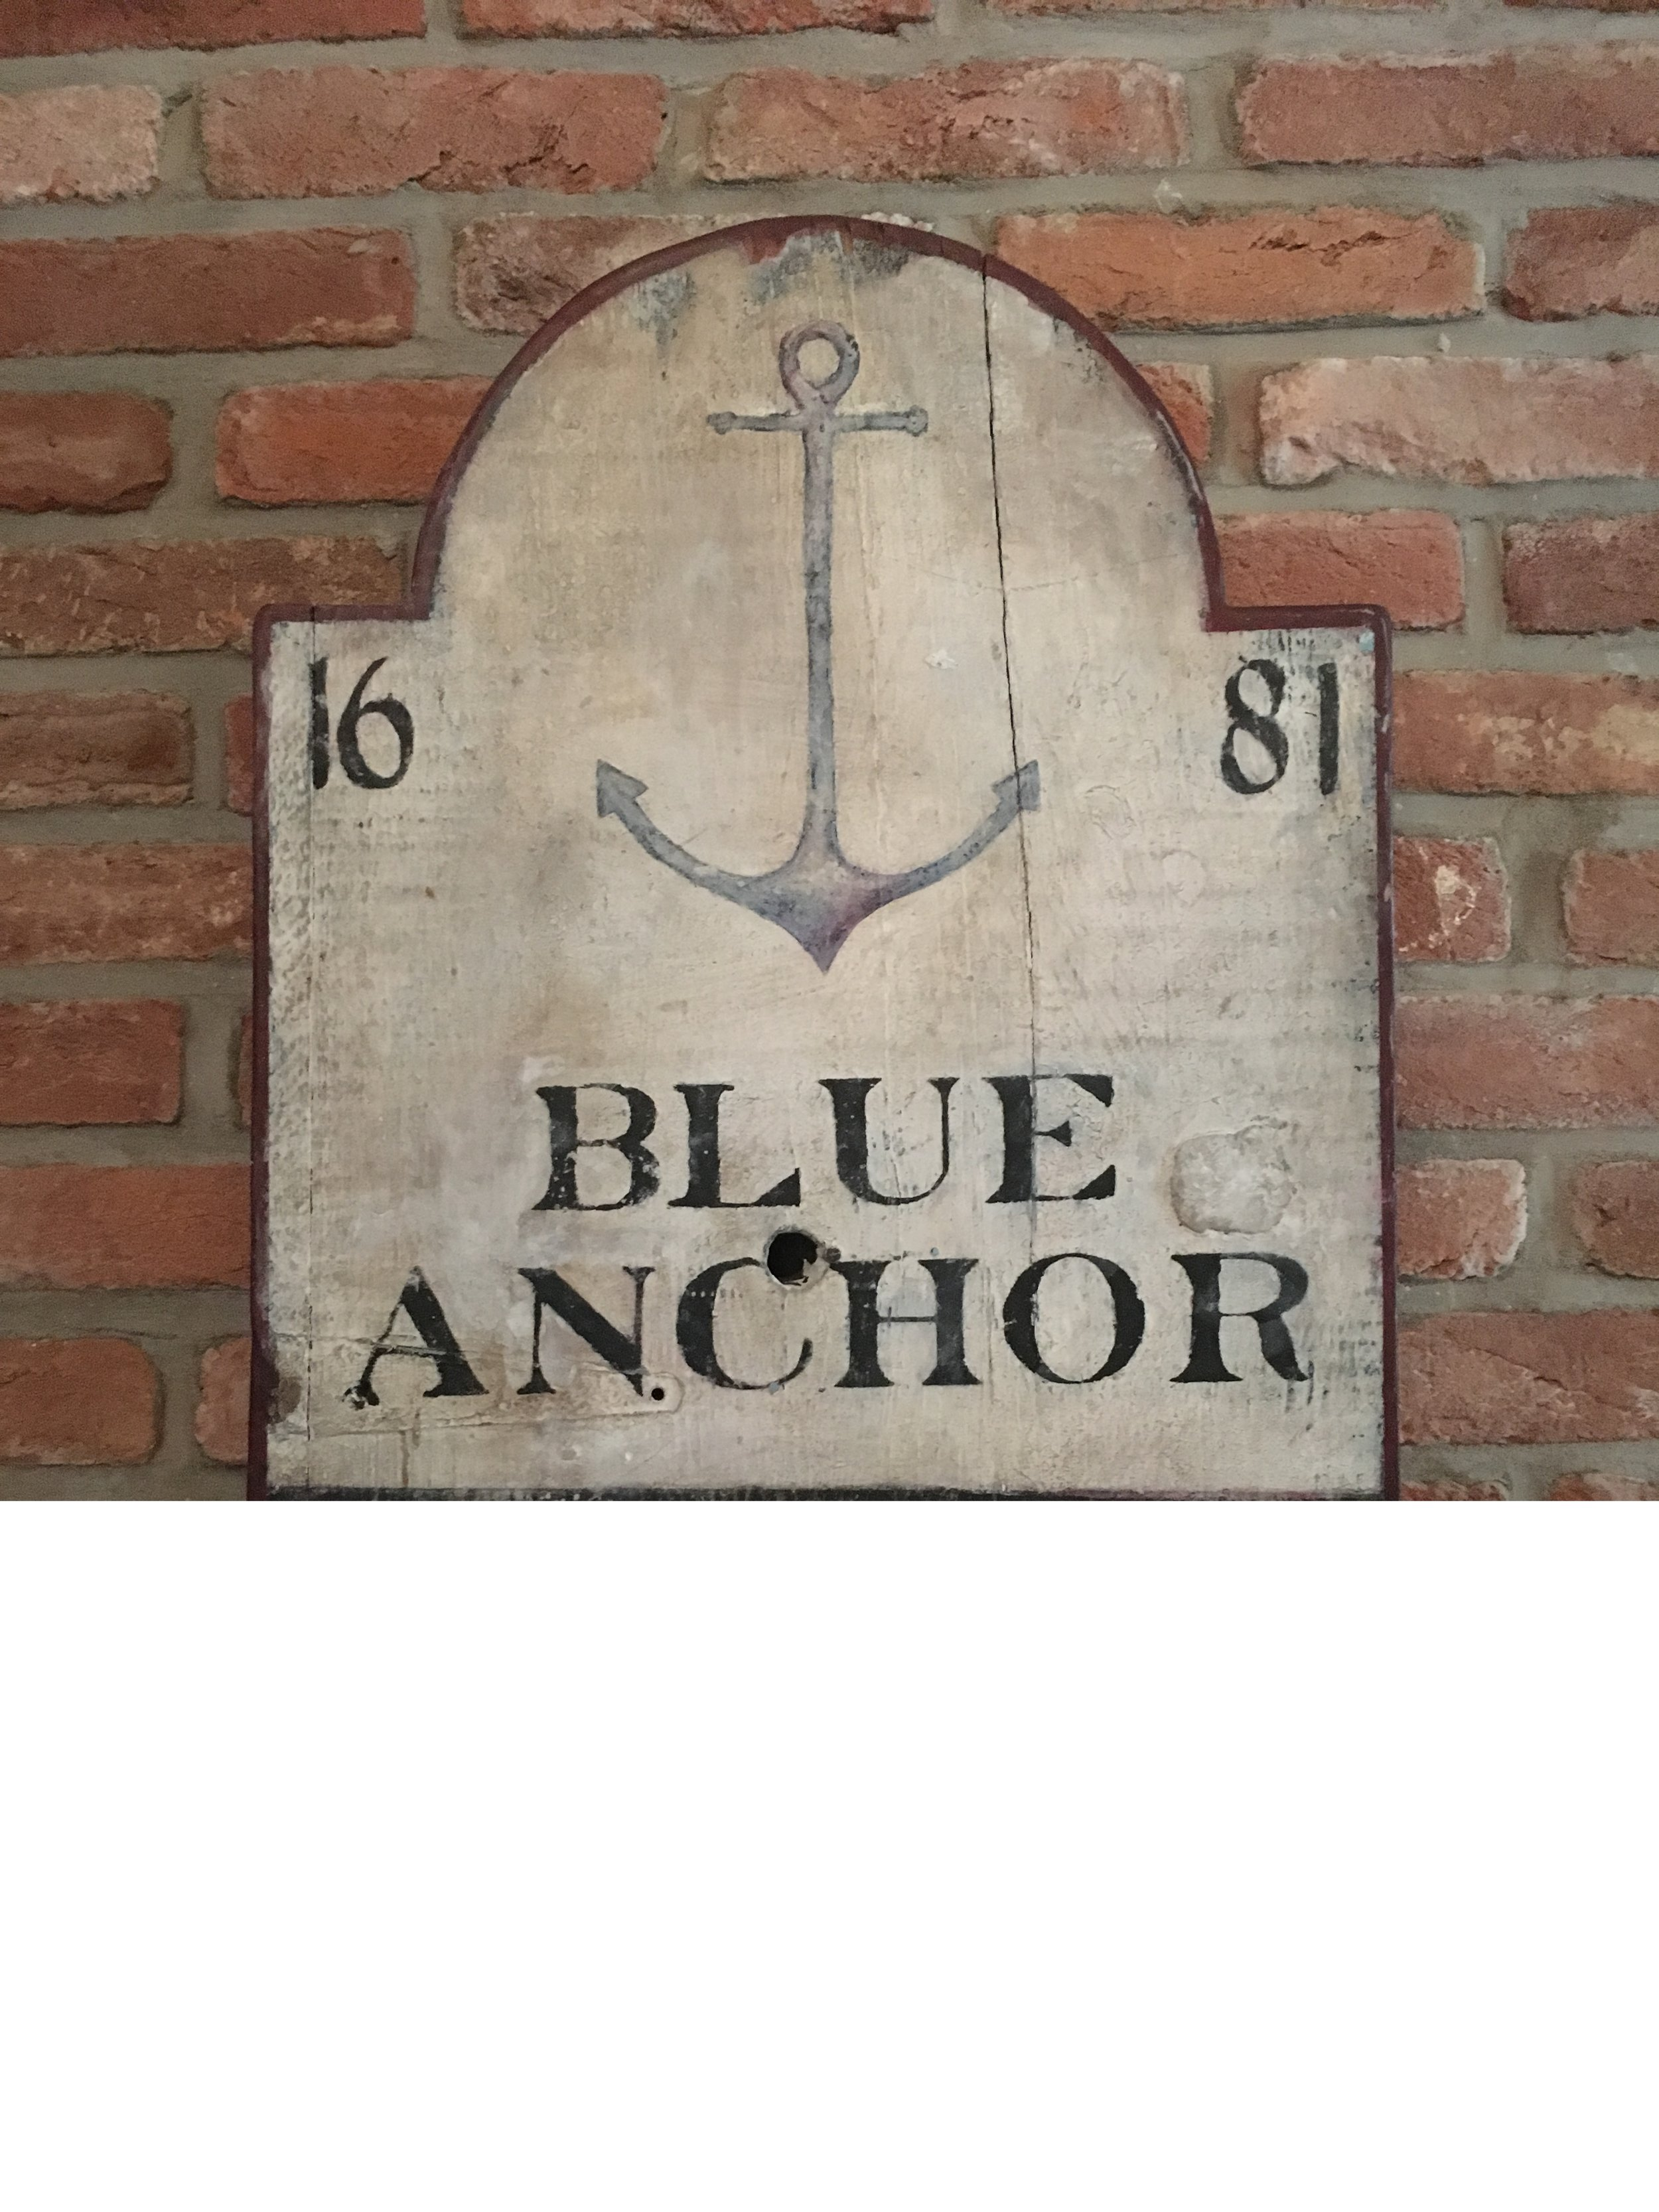 colonial american sign company_blue anchor tavern_thos budd1.jpg